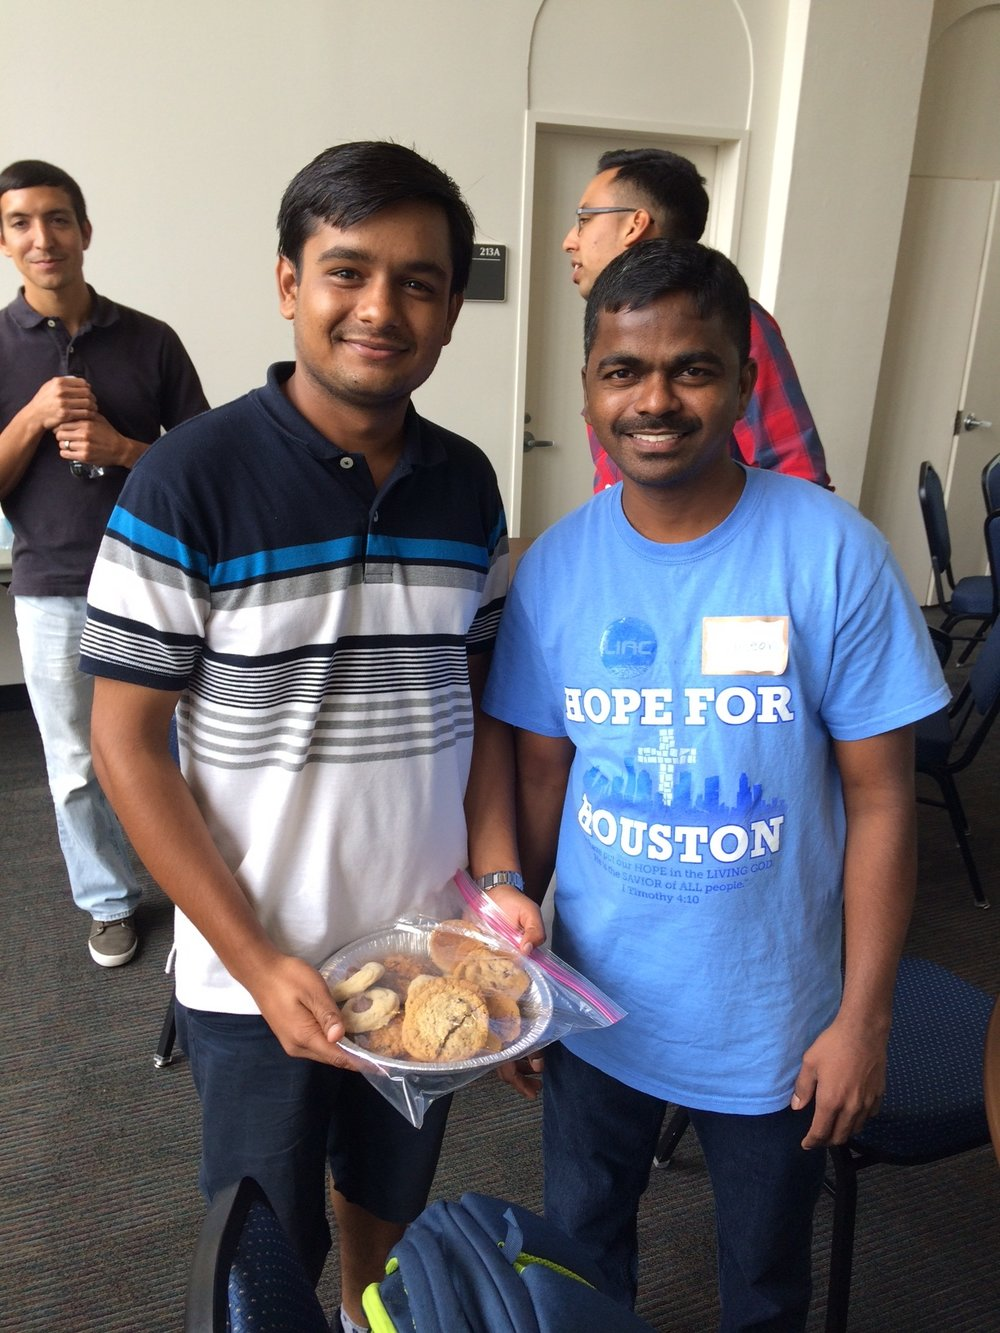 LINC evangelist Simeon Mesa shares some cookies with a Hindu student. Pray that he will be open to the sweet love of Jesus.